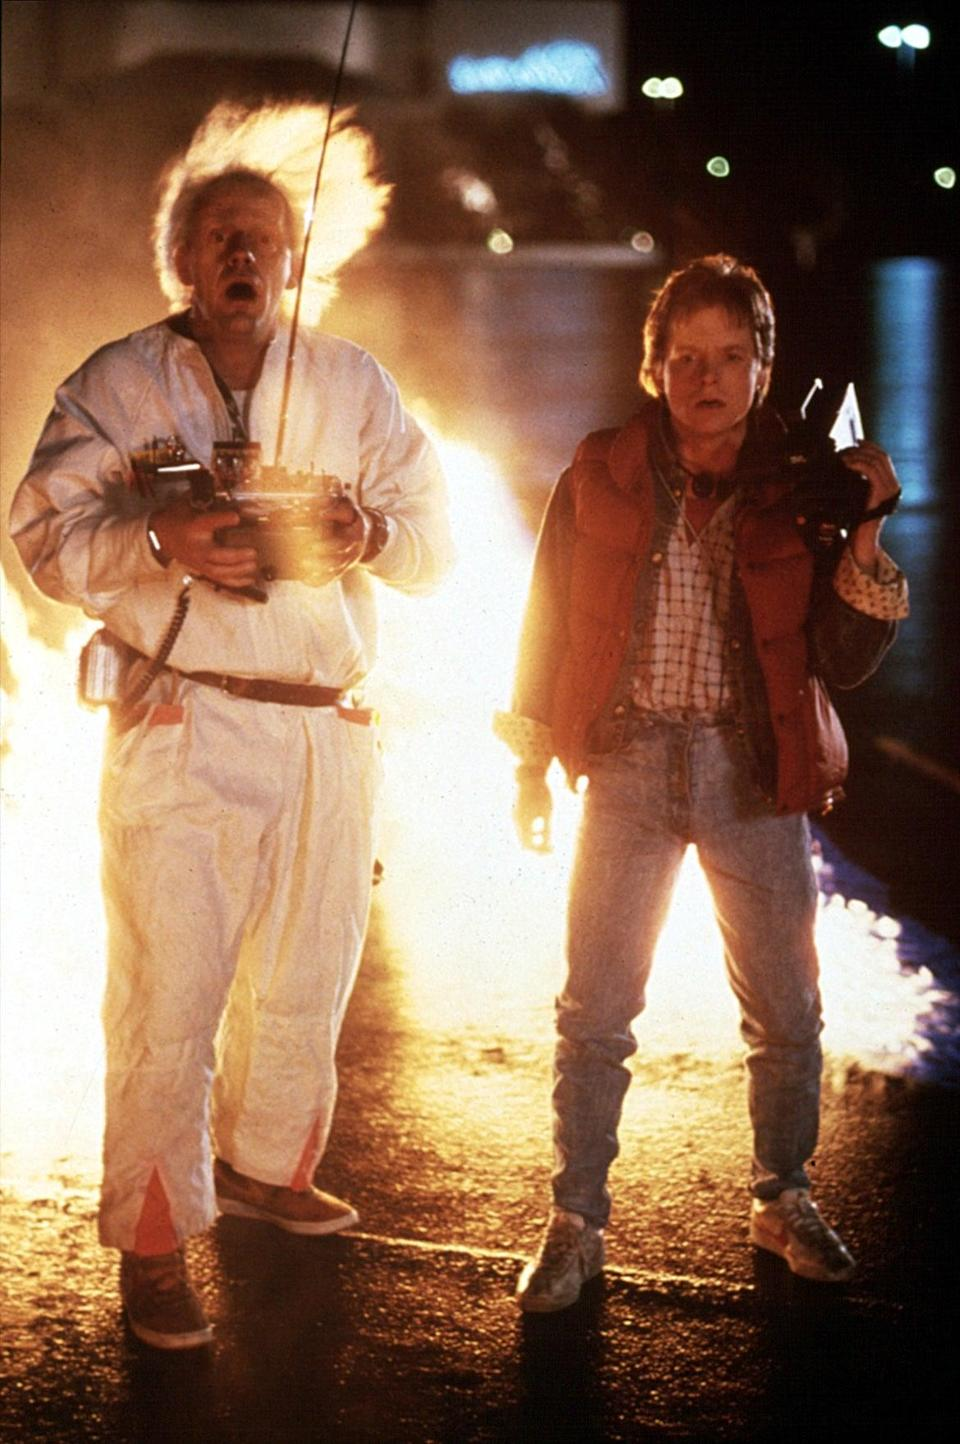 <ul> <li><strong>What to wear for Marty:</strong> You need that signature red puffy vest and jeans.</li> <li><strong>What to wear for Doc:</strong> Just sports a white jumpsuit and crazy white hair.</li> </ul>